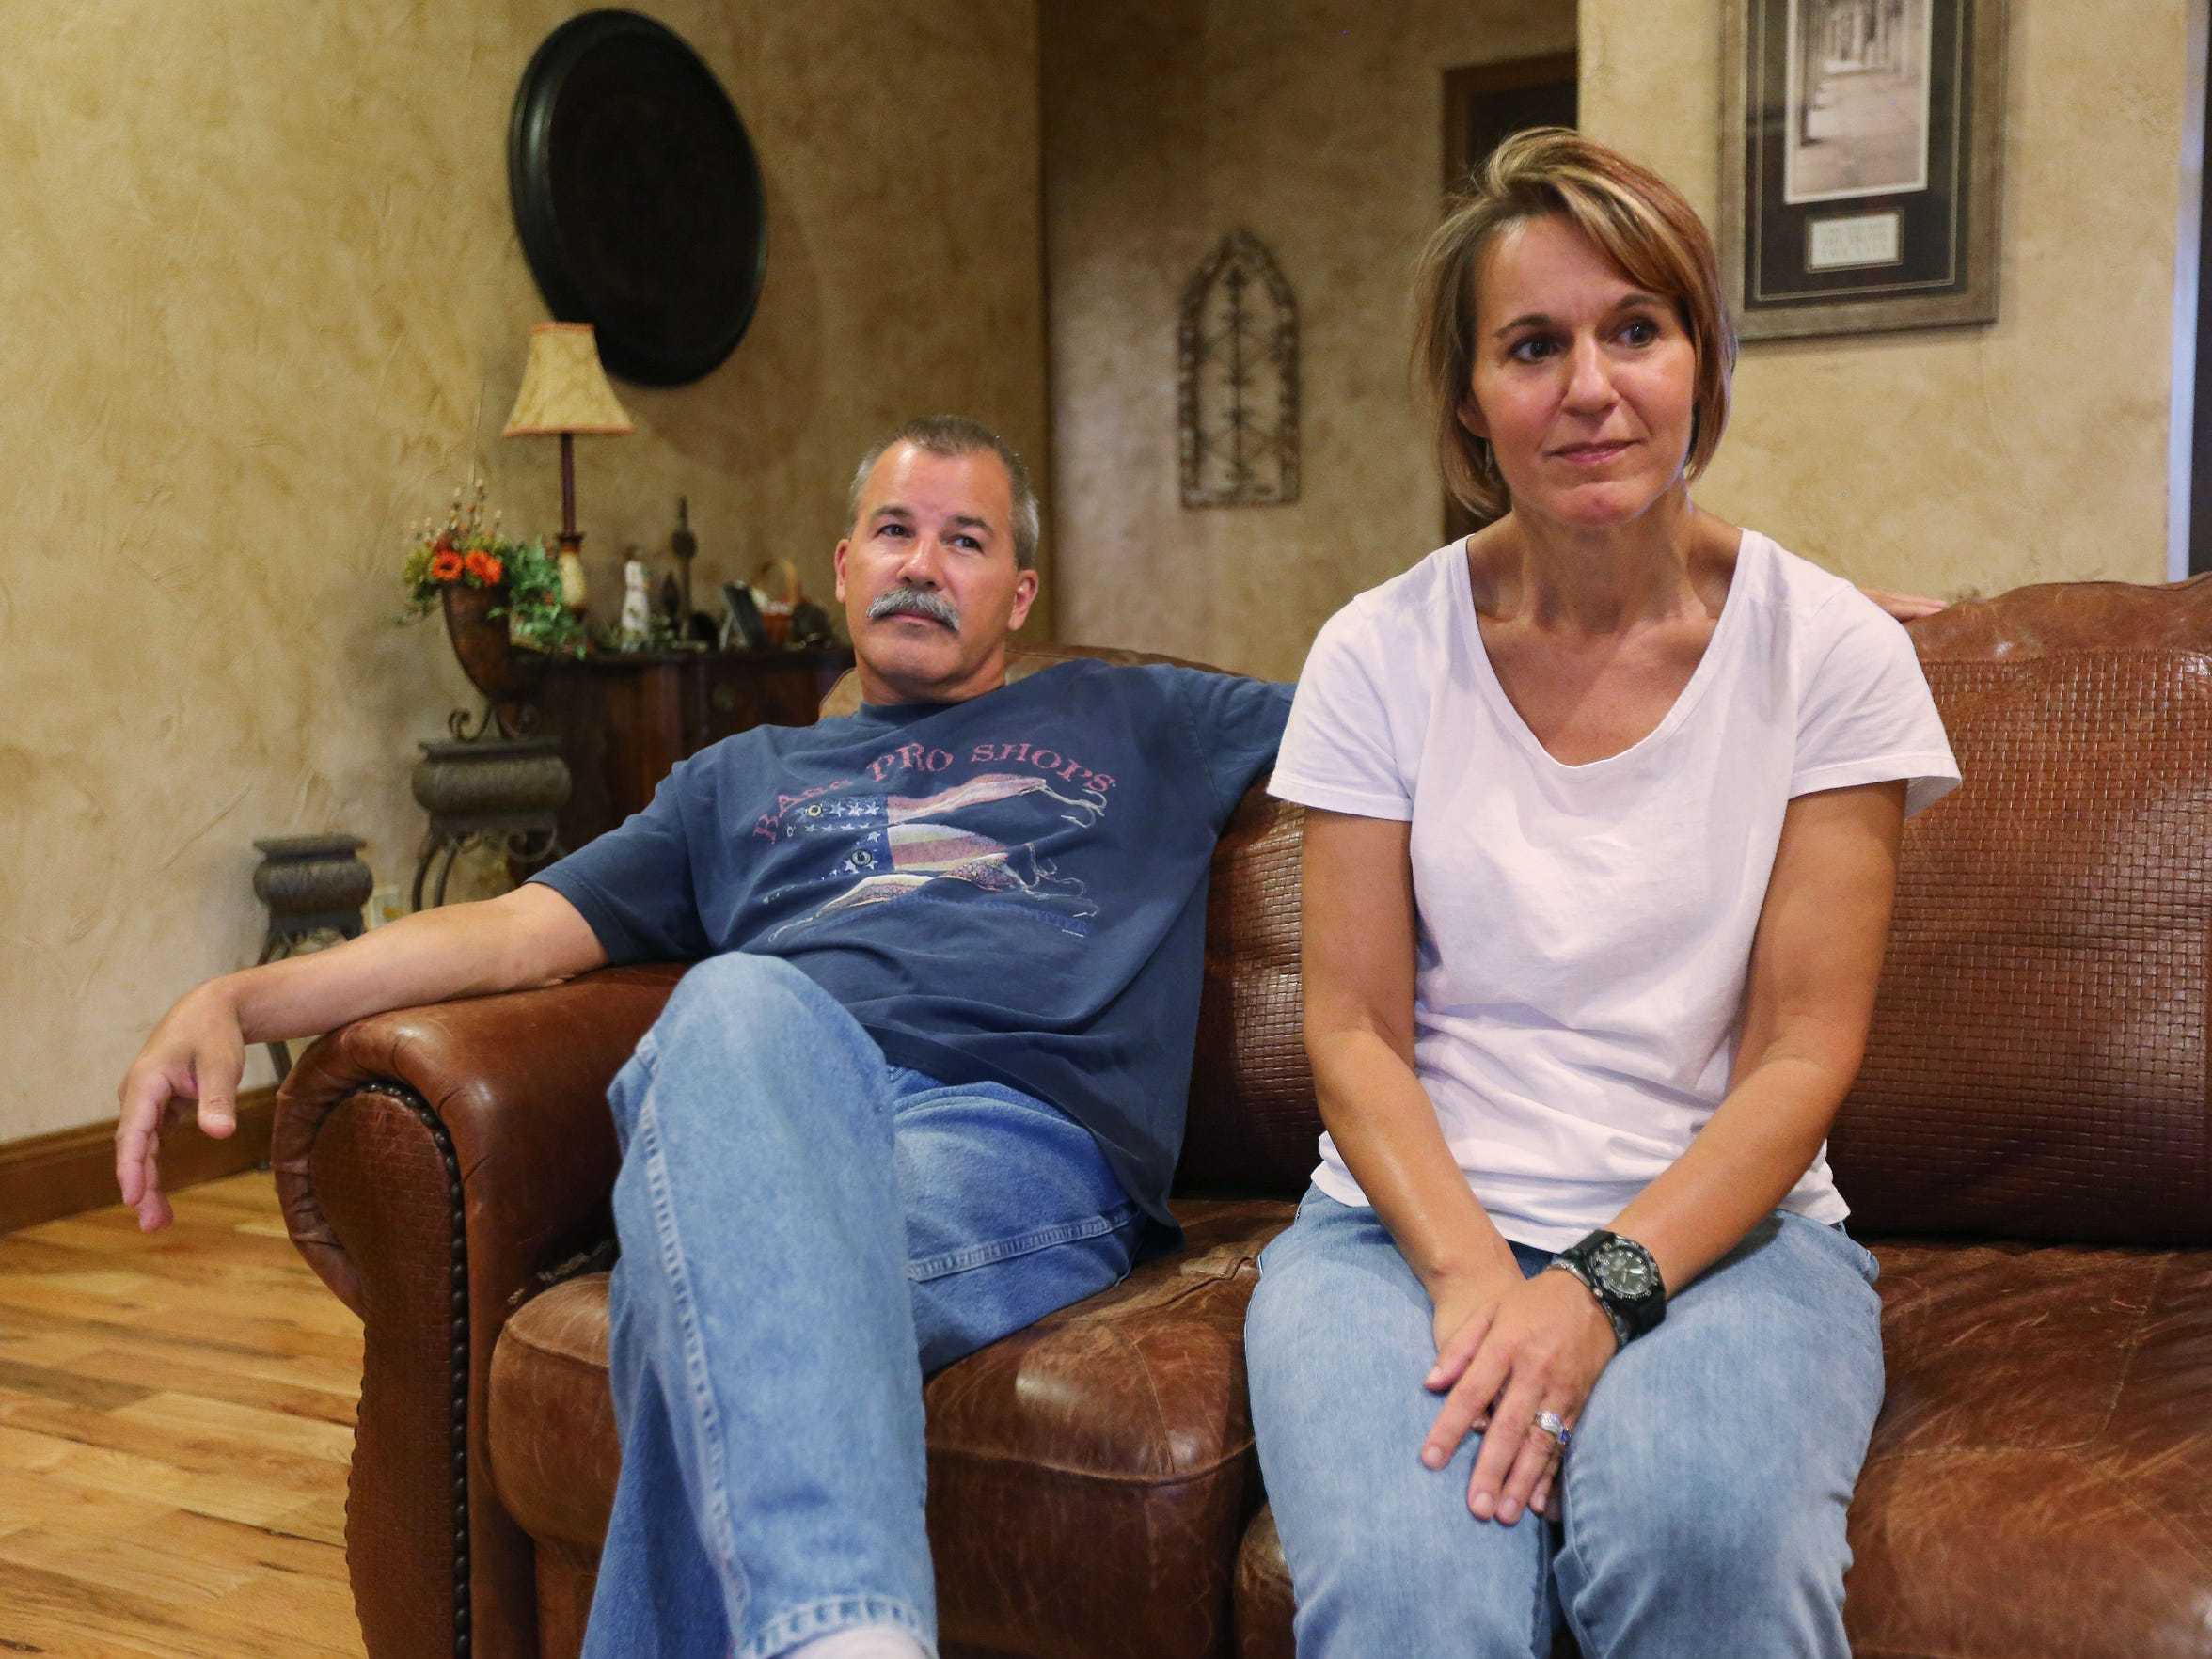 William and Patricia Lammers have struggled to find